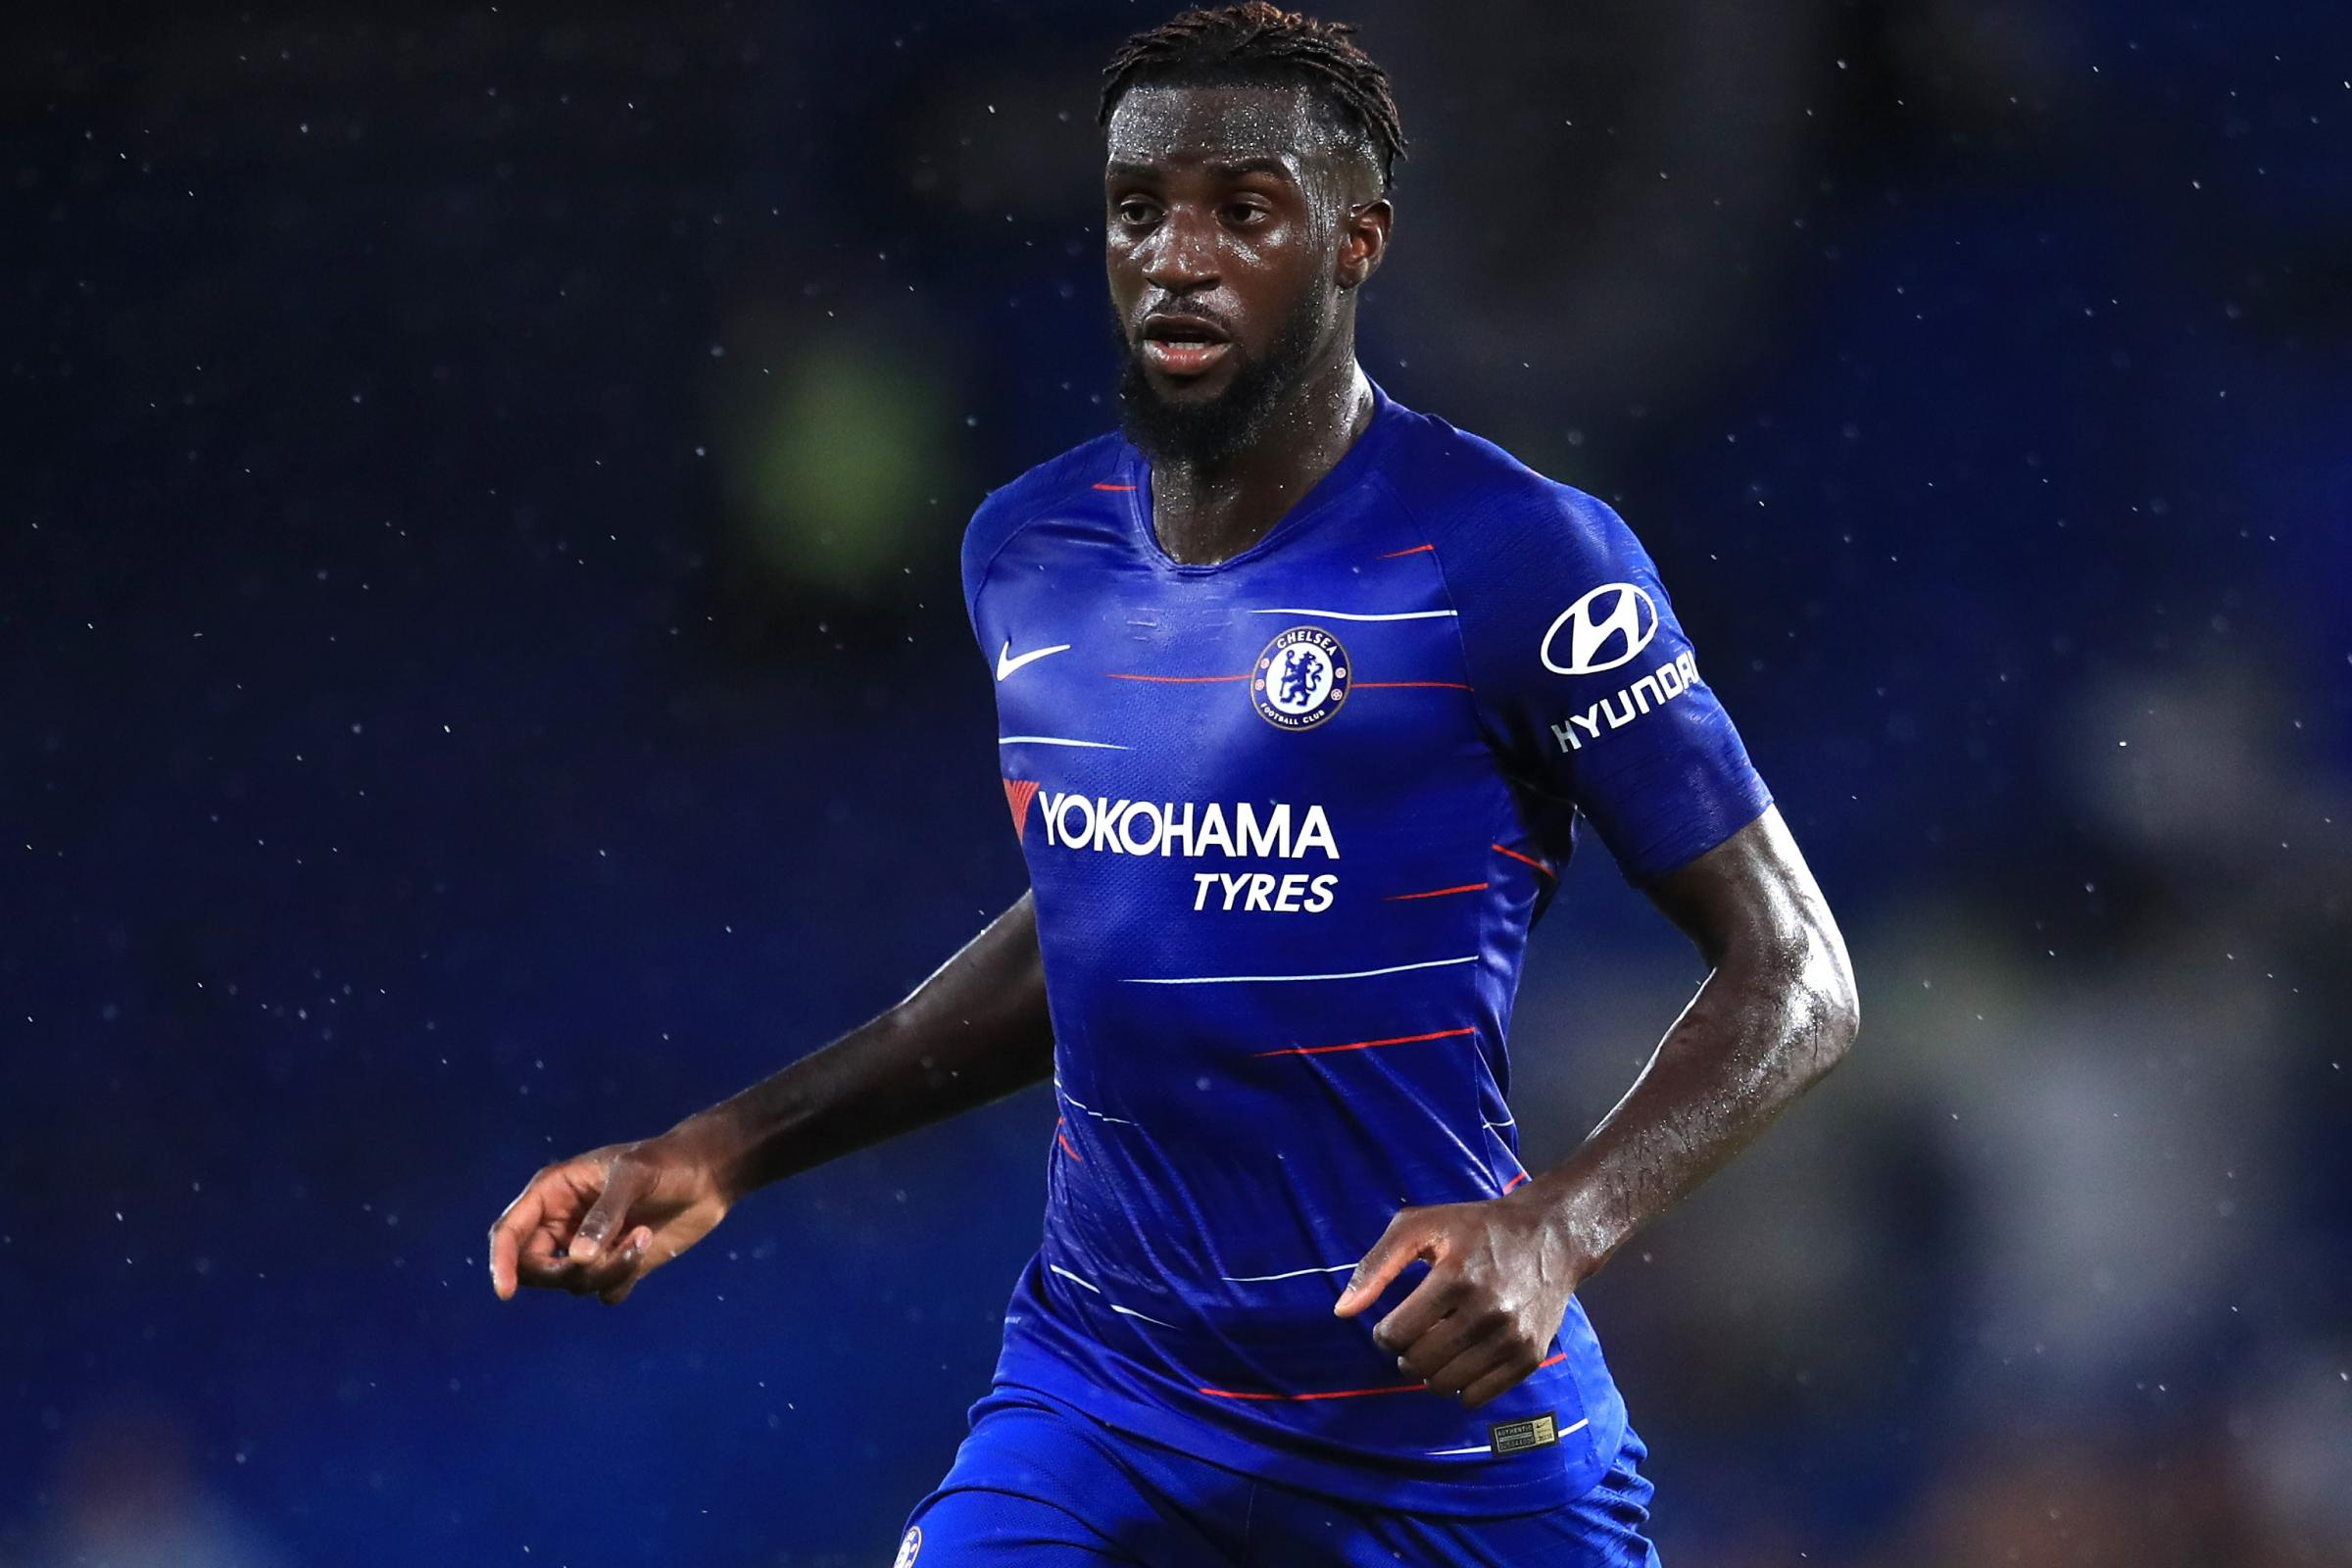 Tiemoue Bakayoko 'poised' to secure Chelsea FC exit